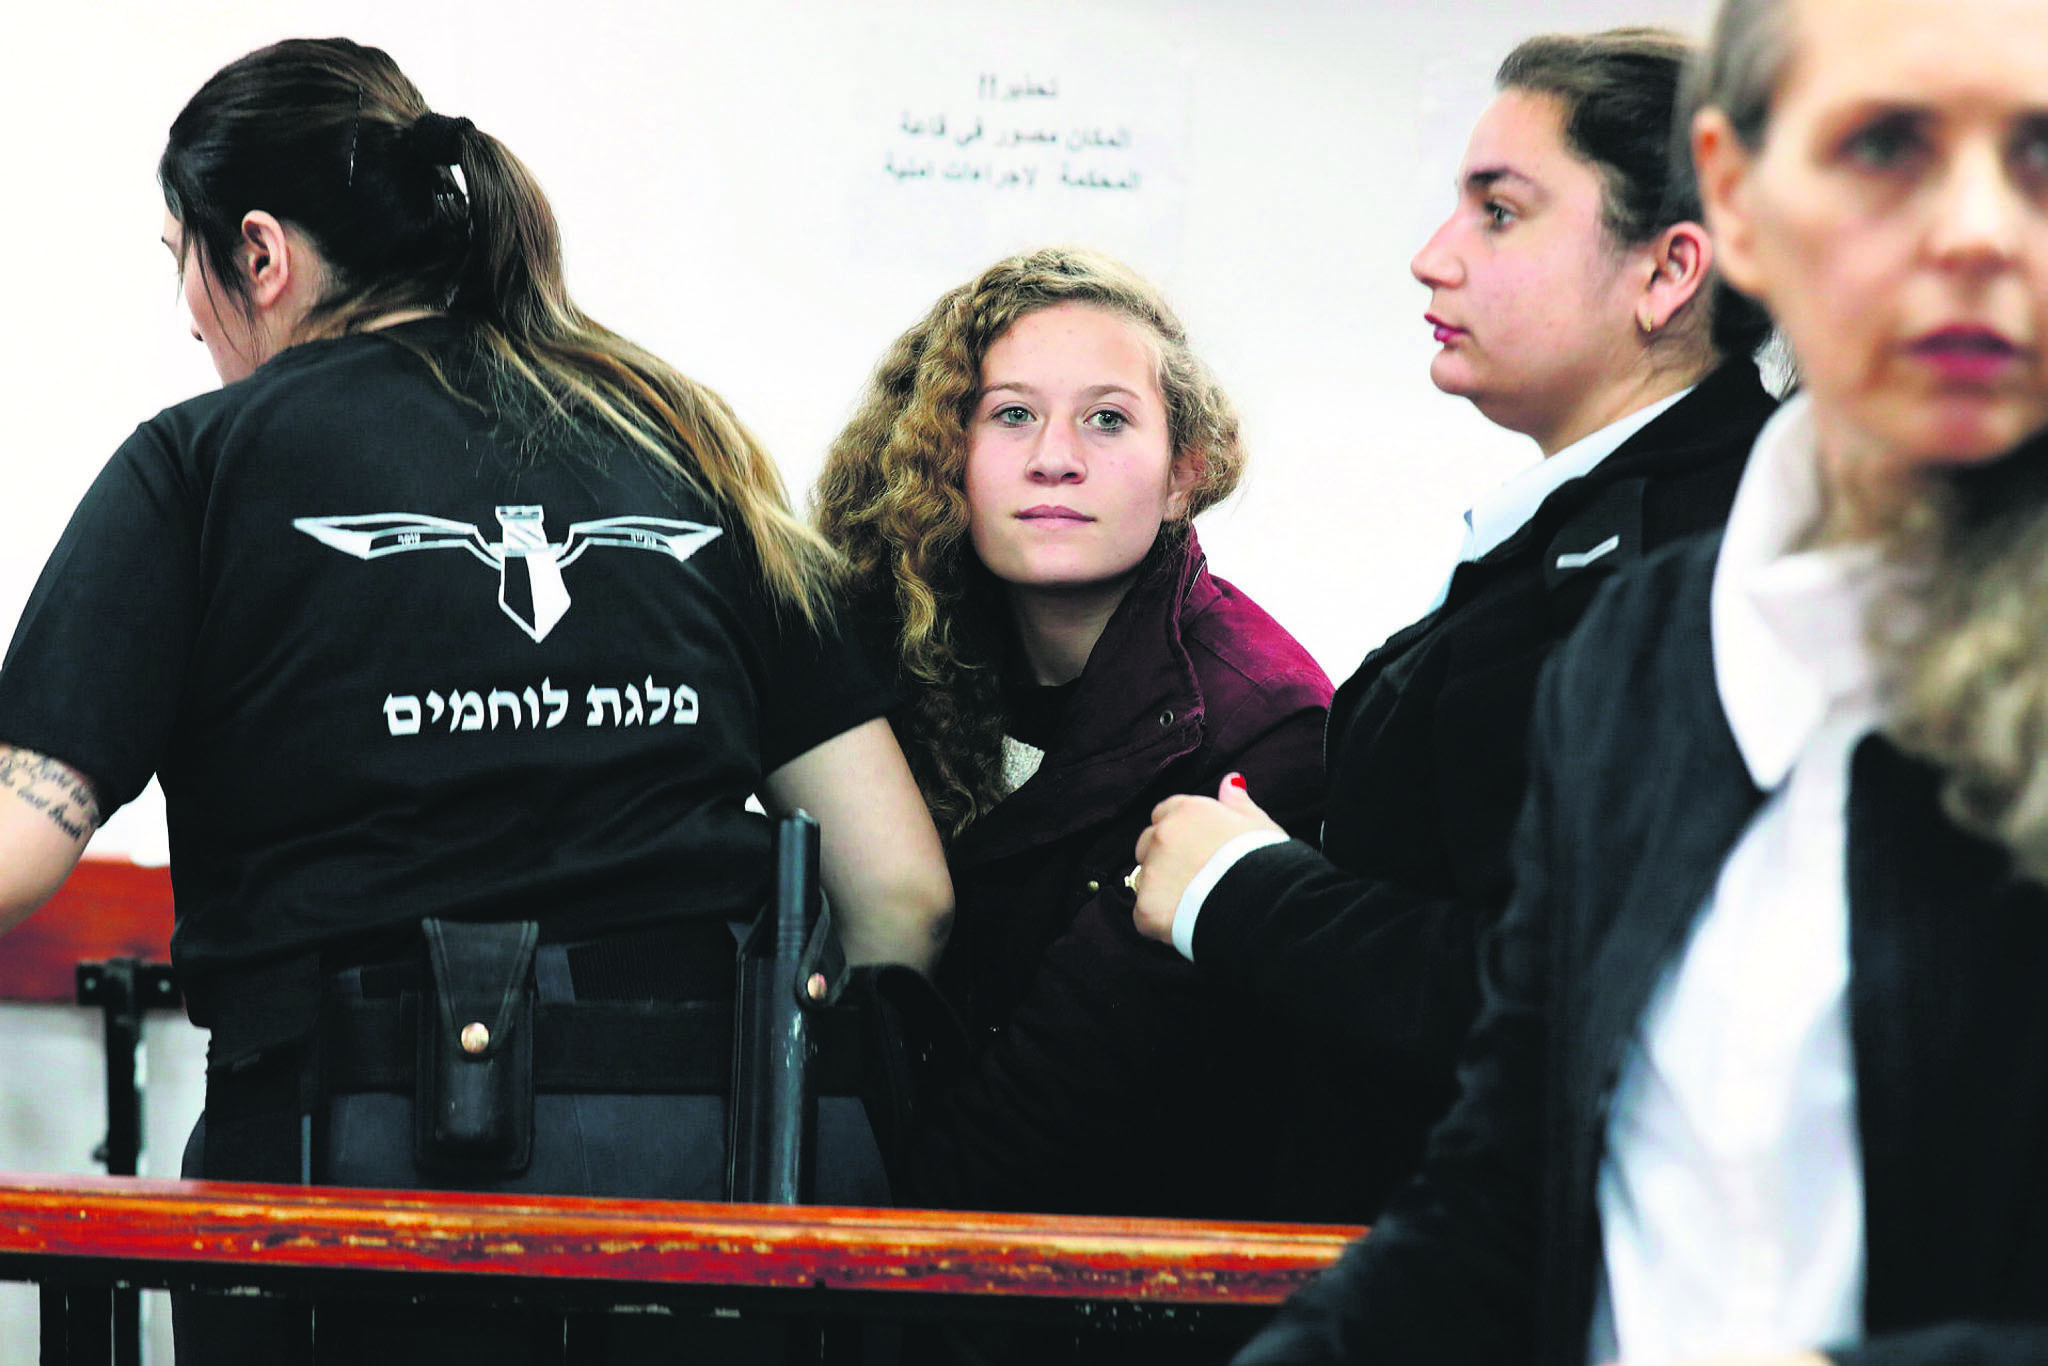 Ahed Tamimi (C) appears at a military court at the Israeli-run Ofer prison in the West Bank village of Betunia, Dec. 20.